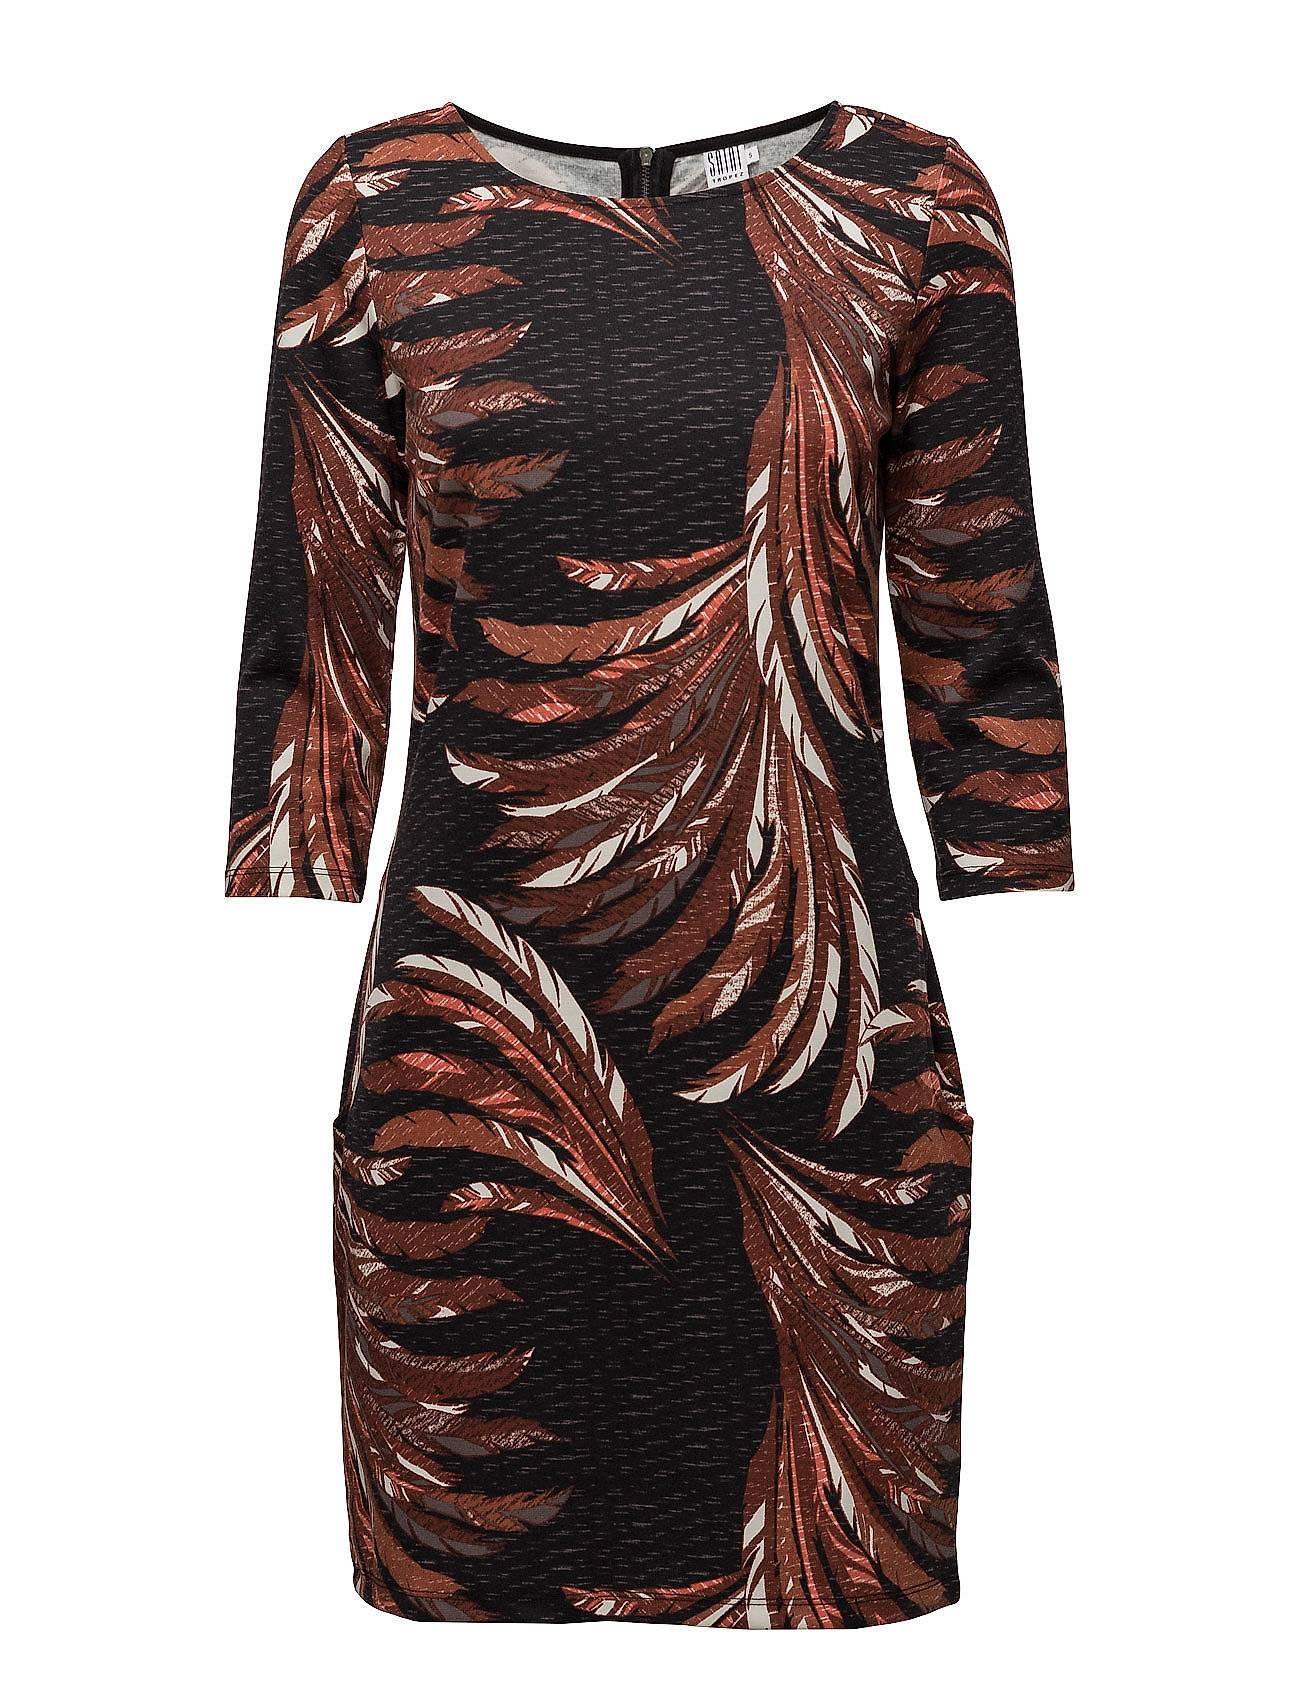 Saint Tropez Feather Printed Jersey Dress